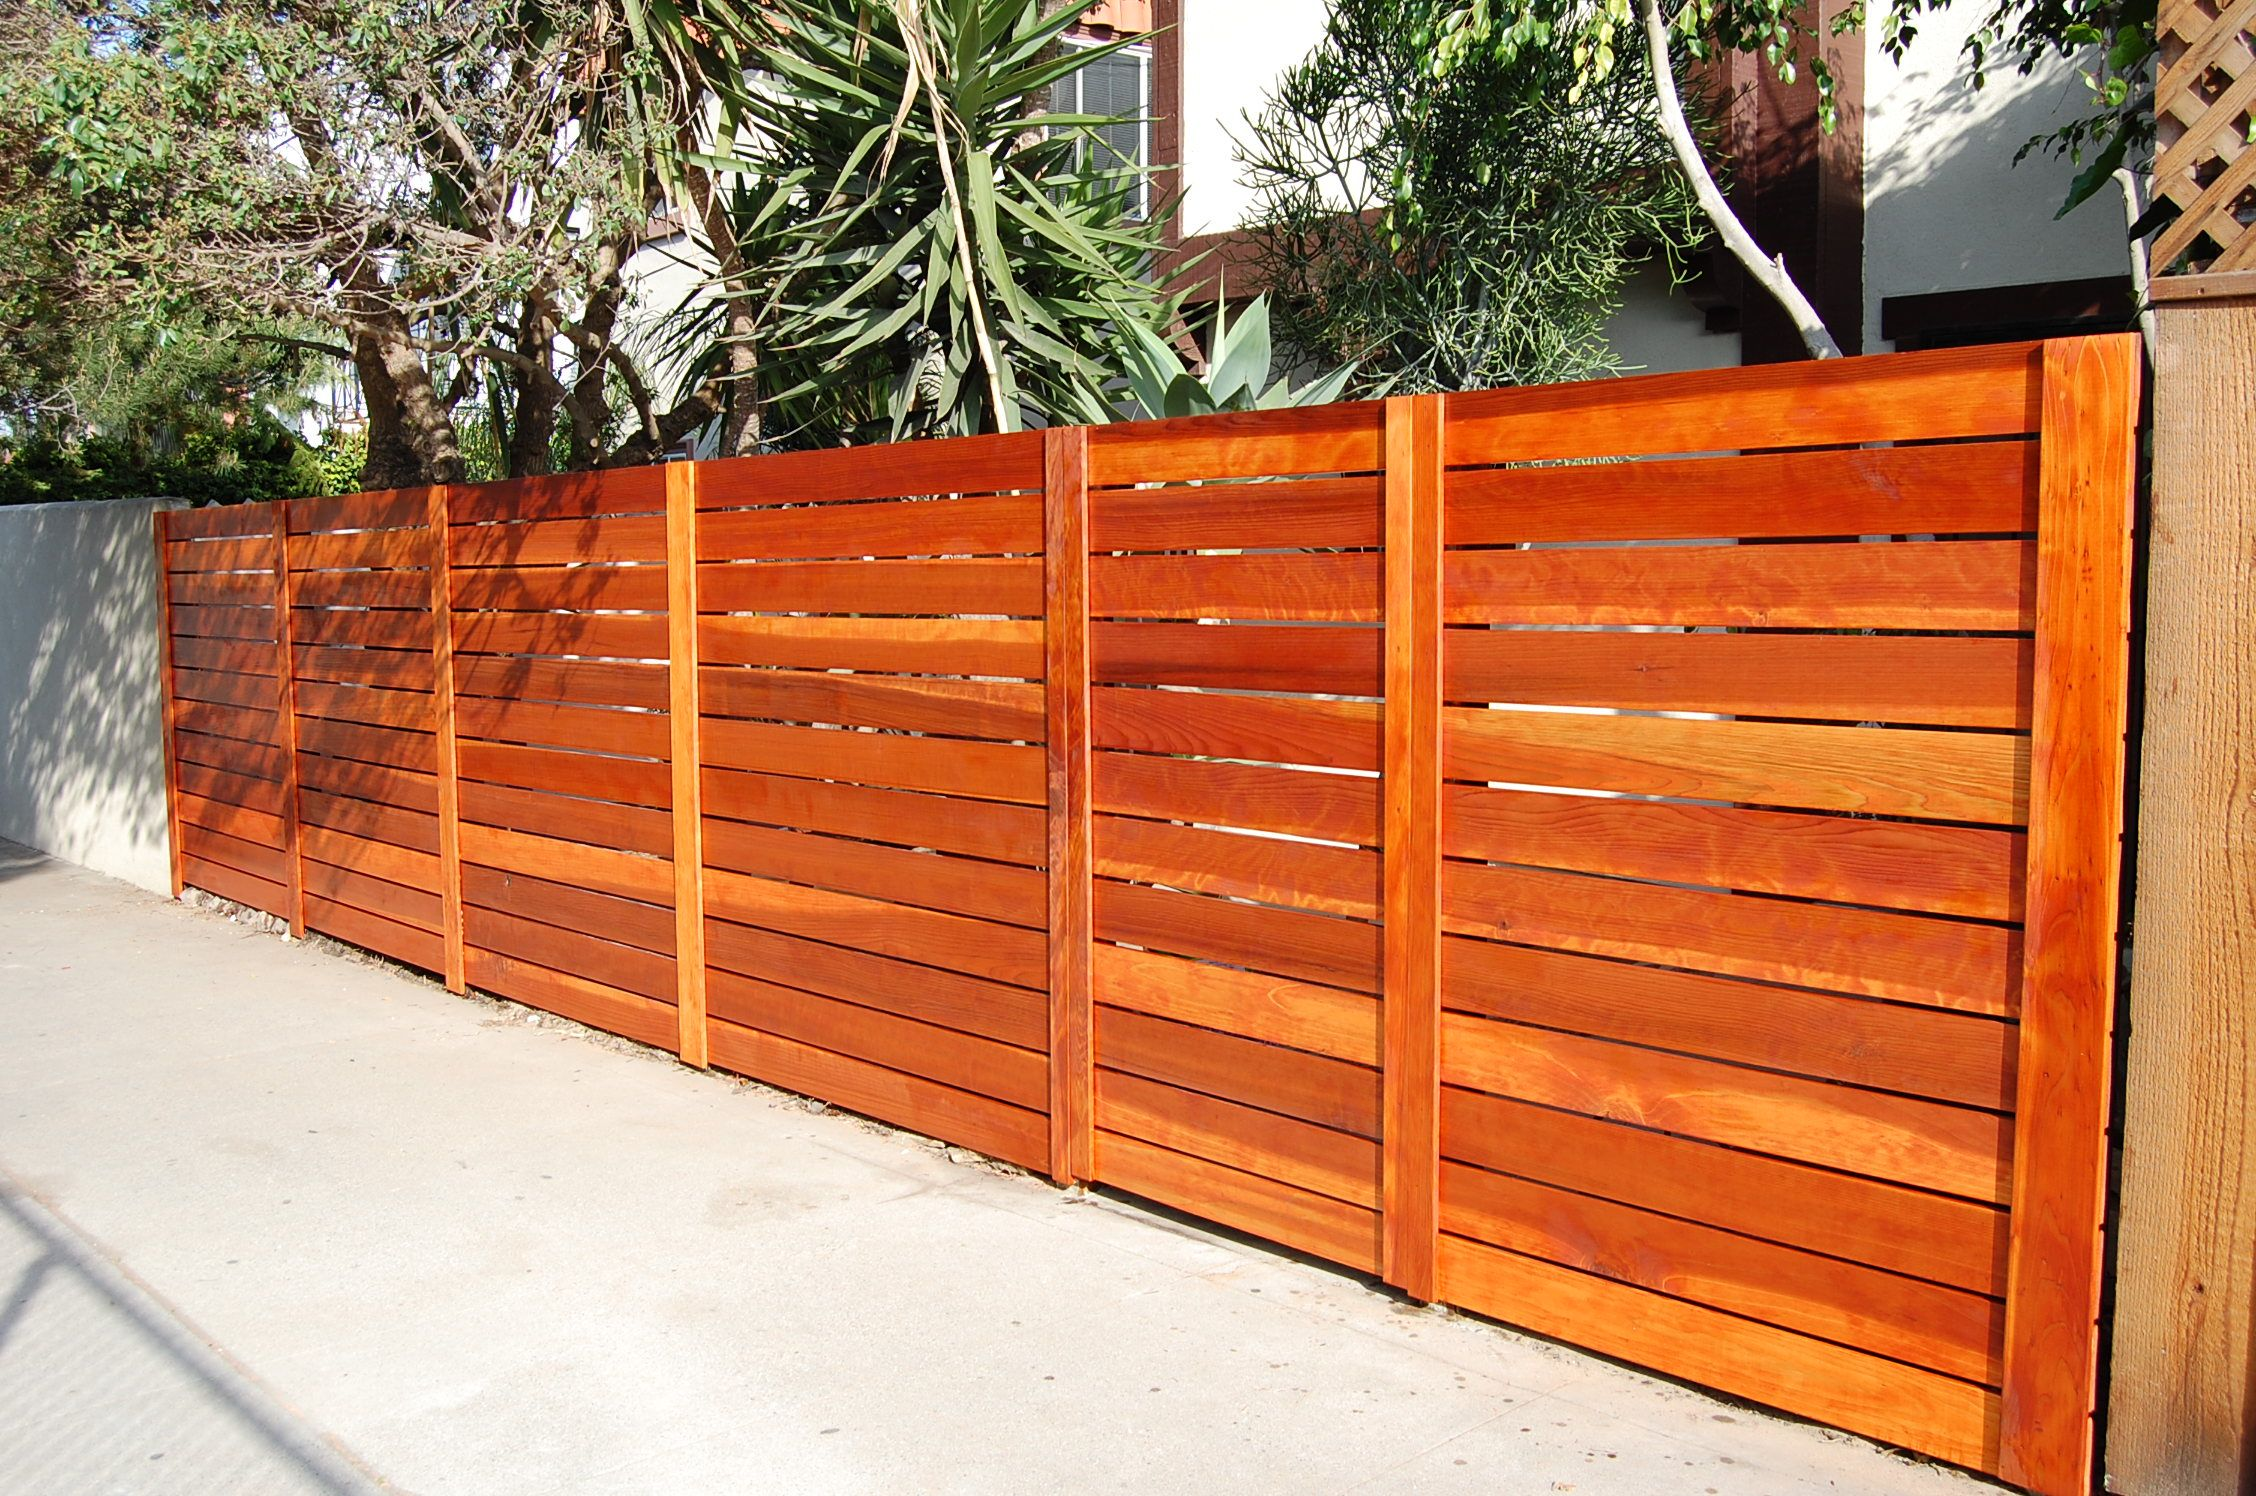 Wood Fencing | Fence design, Modern backyard design